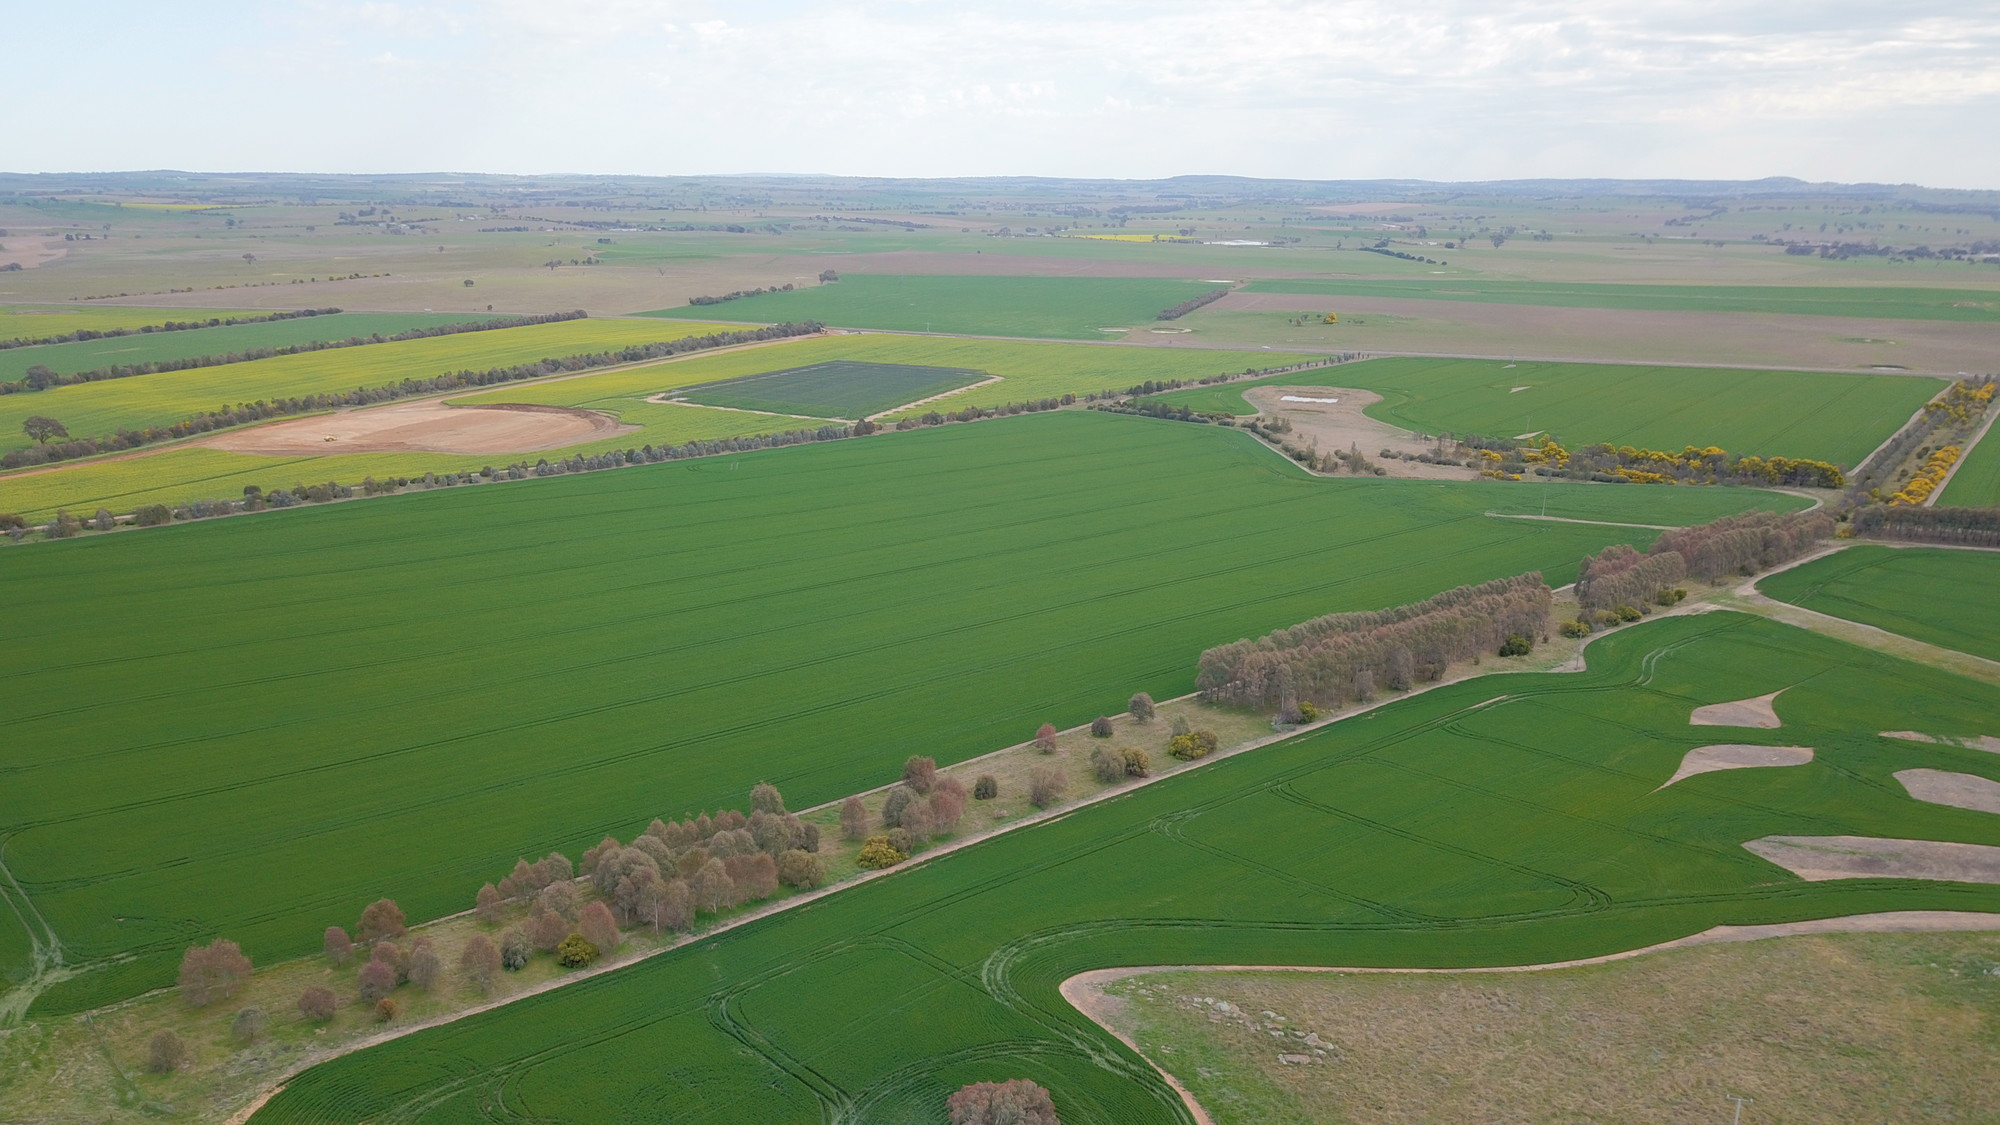 Aerial view of Boorowa Agricultural Research Station